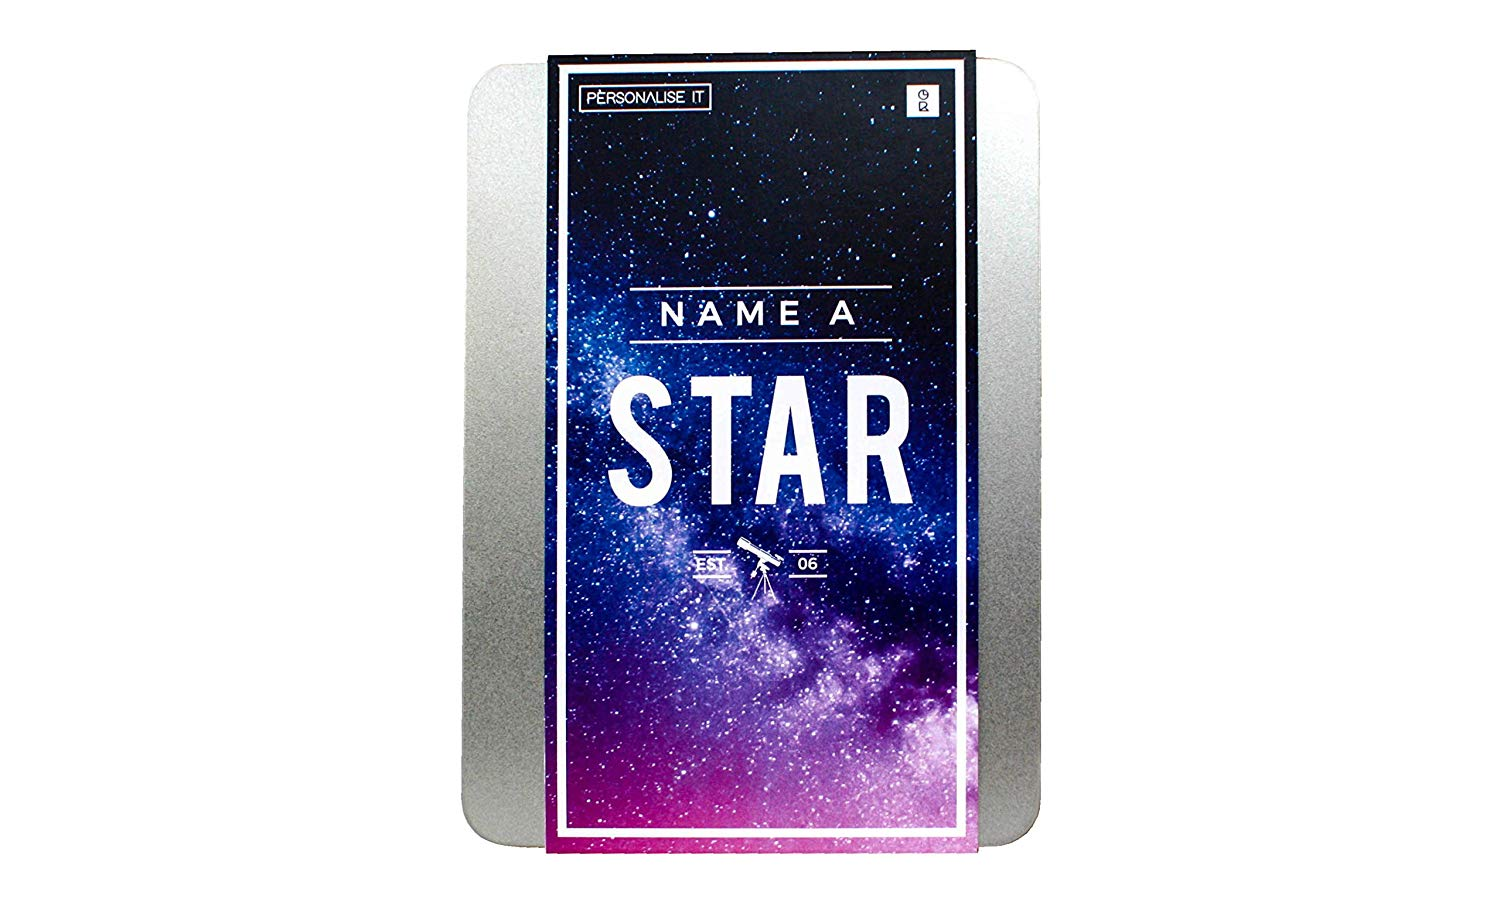 name a star gift box